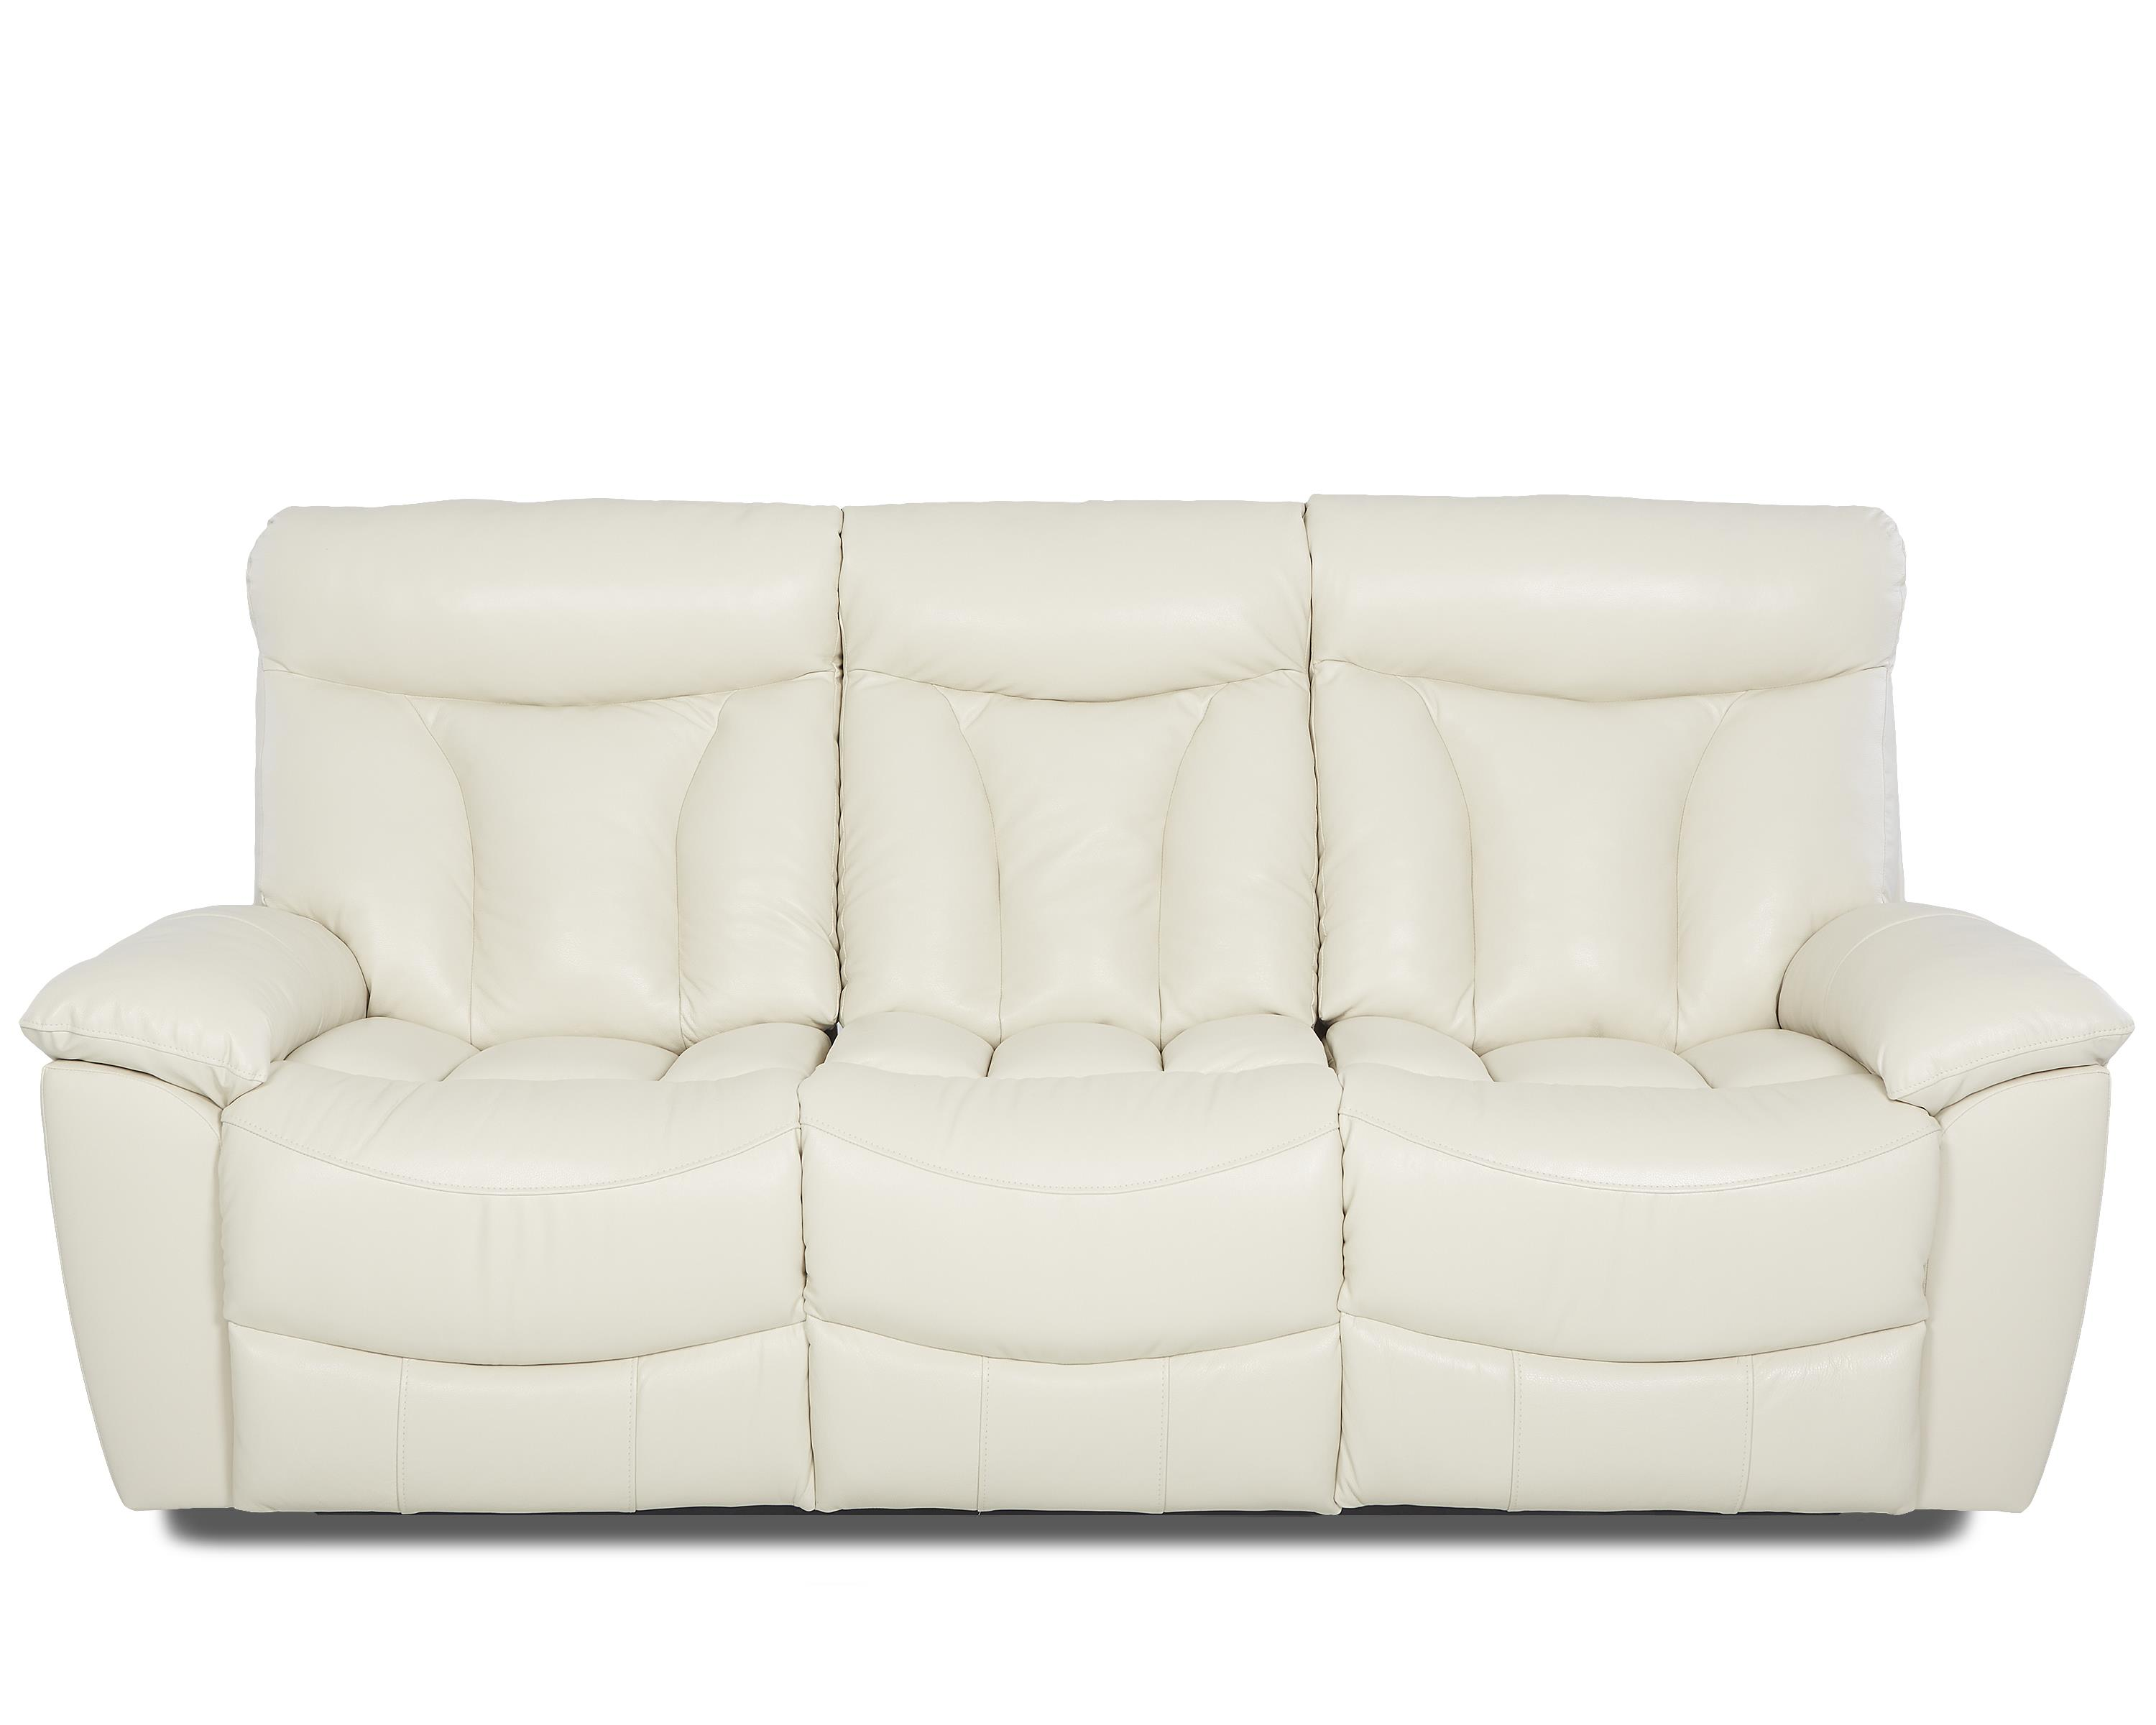 Klaussner Deluxe Reclining Sofa - Item Number: LV63703 PWRS